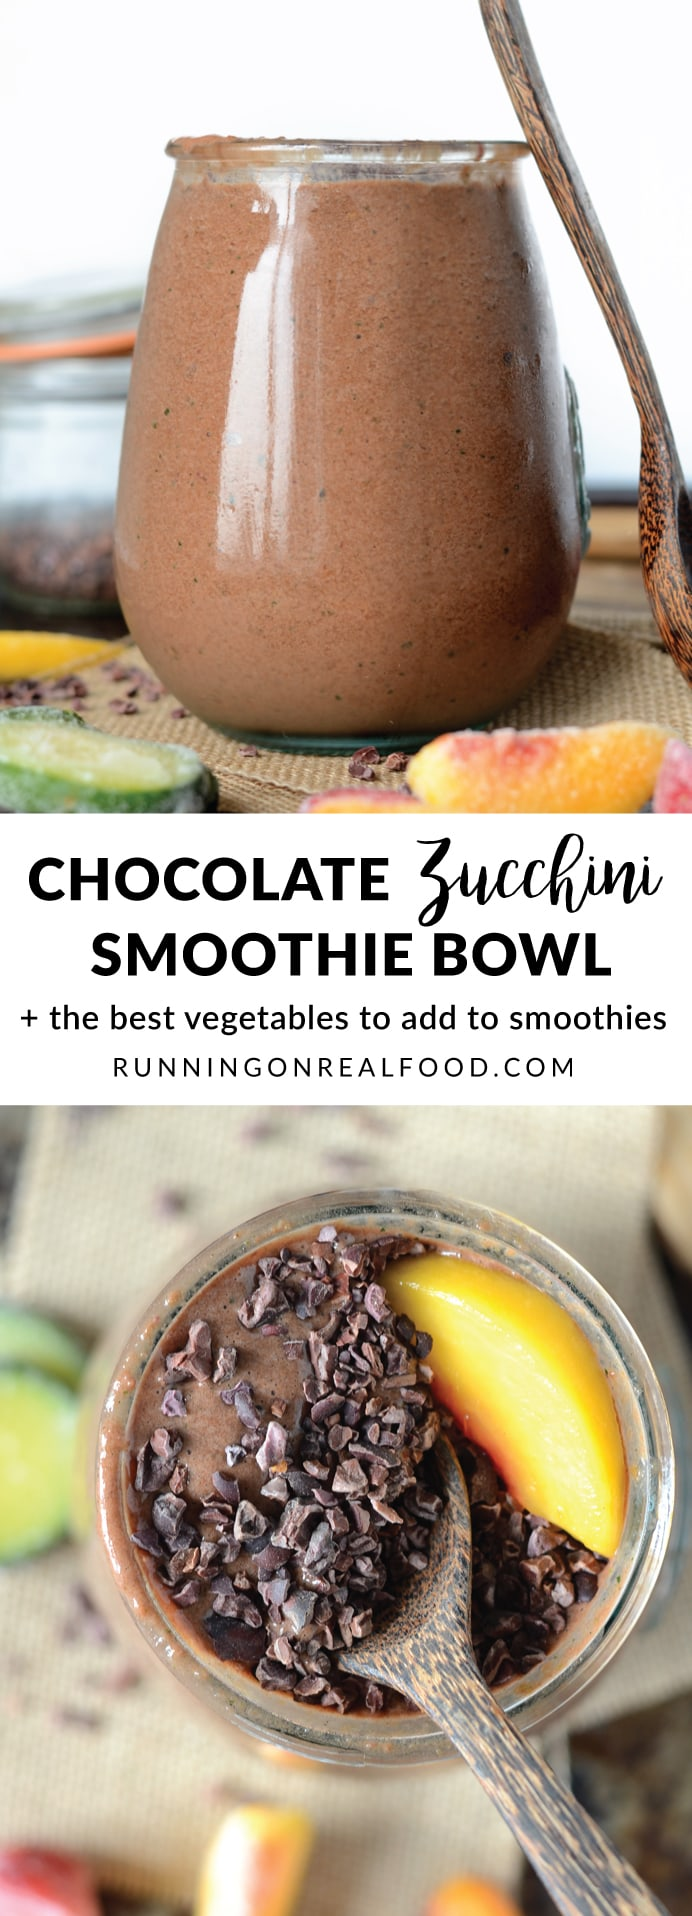 Check out the best veggies to add to smoothies plus try this thick, creamy and decadent, chocolate zucchini smoothie bowl made with simple, everyday, healthy ingredients! Vegan, low sugar, high protein.